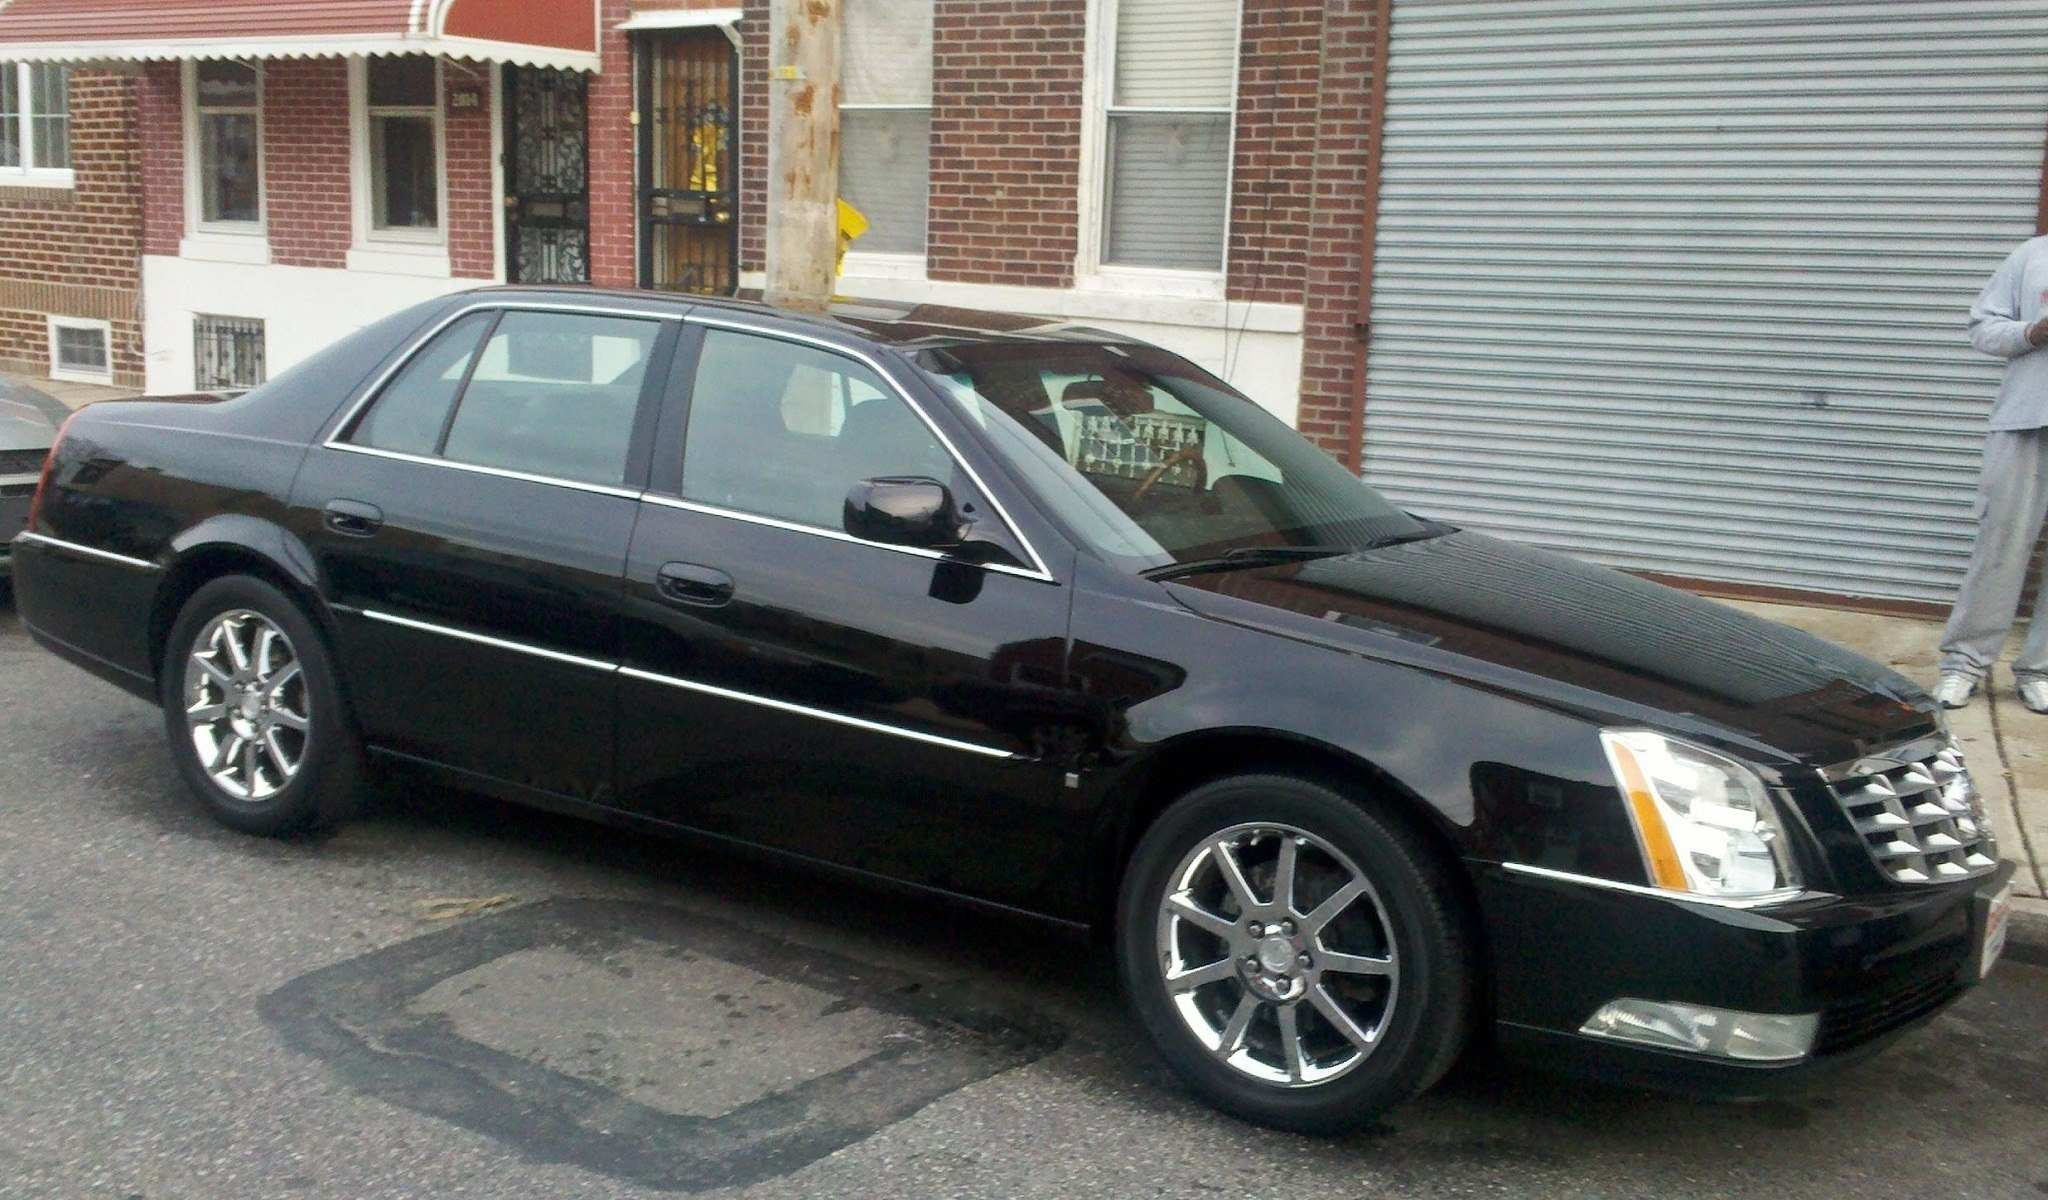 44 Best 2020 Cadillac Dts Wallpaper